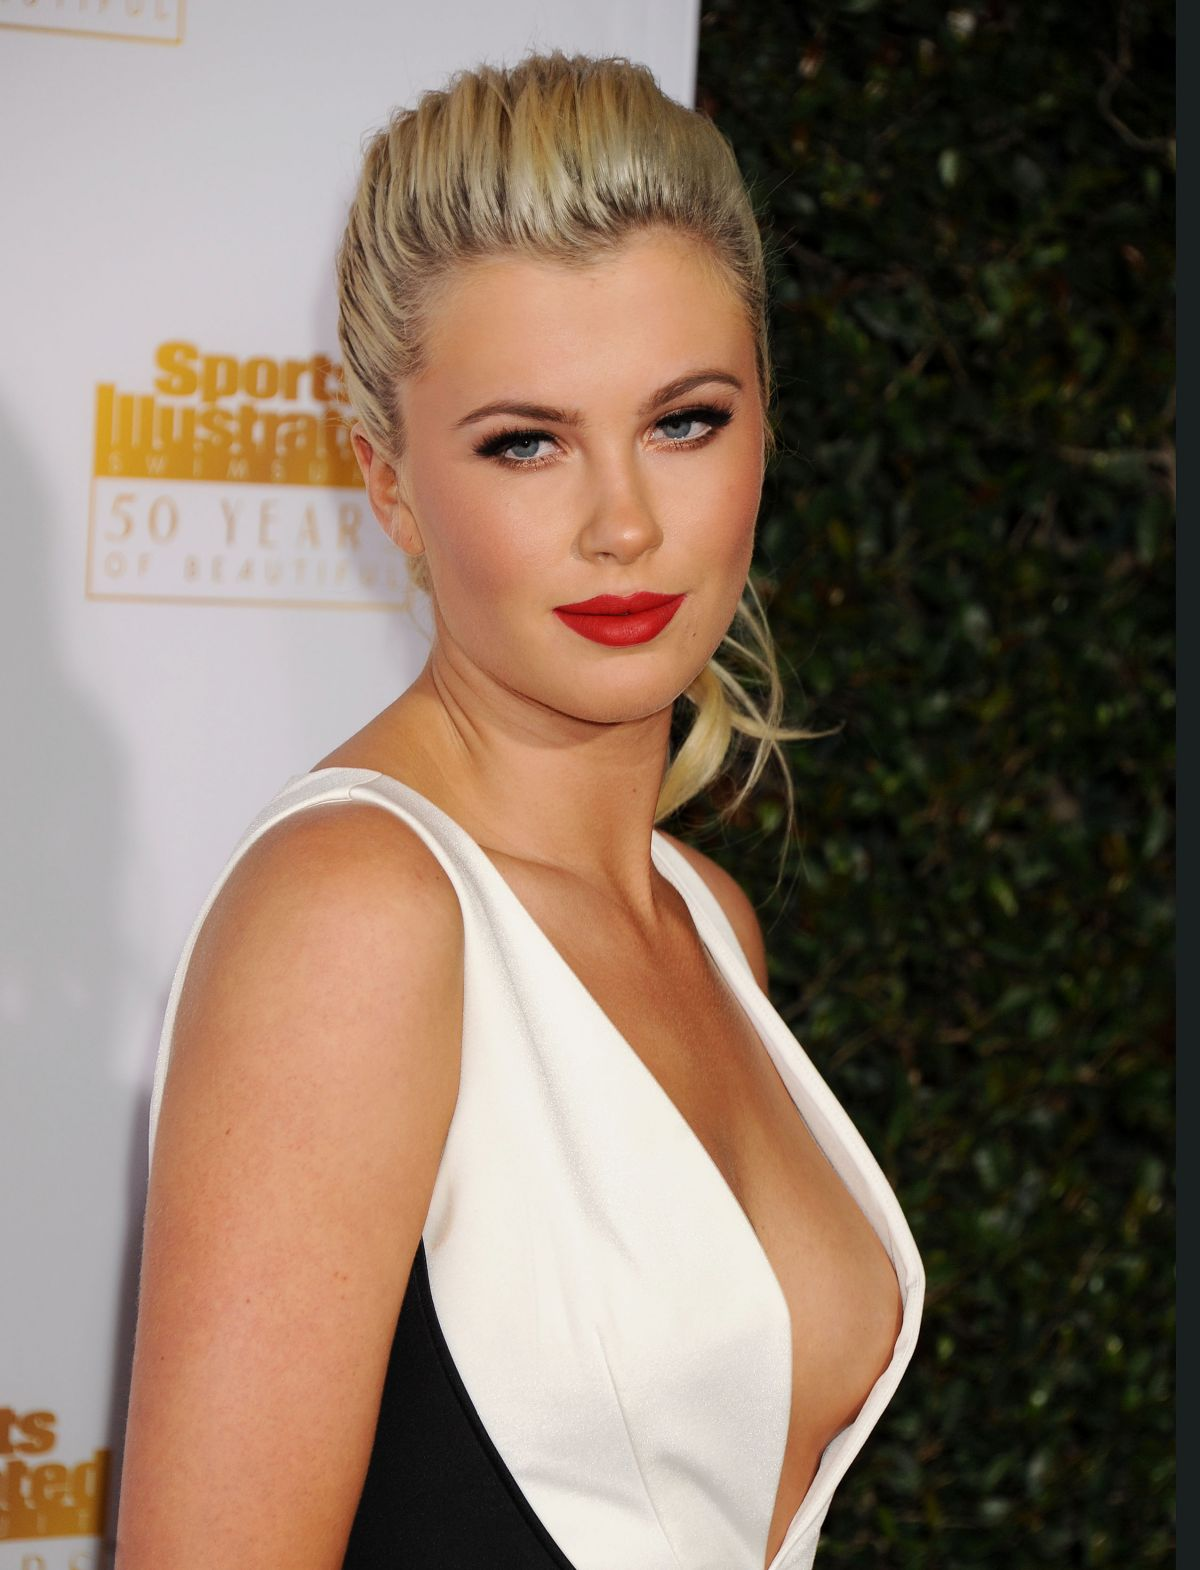 61 Hot Pictures Of Ireland Baldwin Are Hot As Hellfire